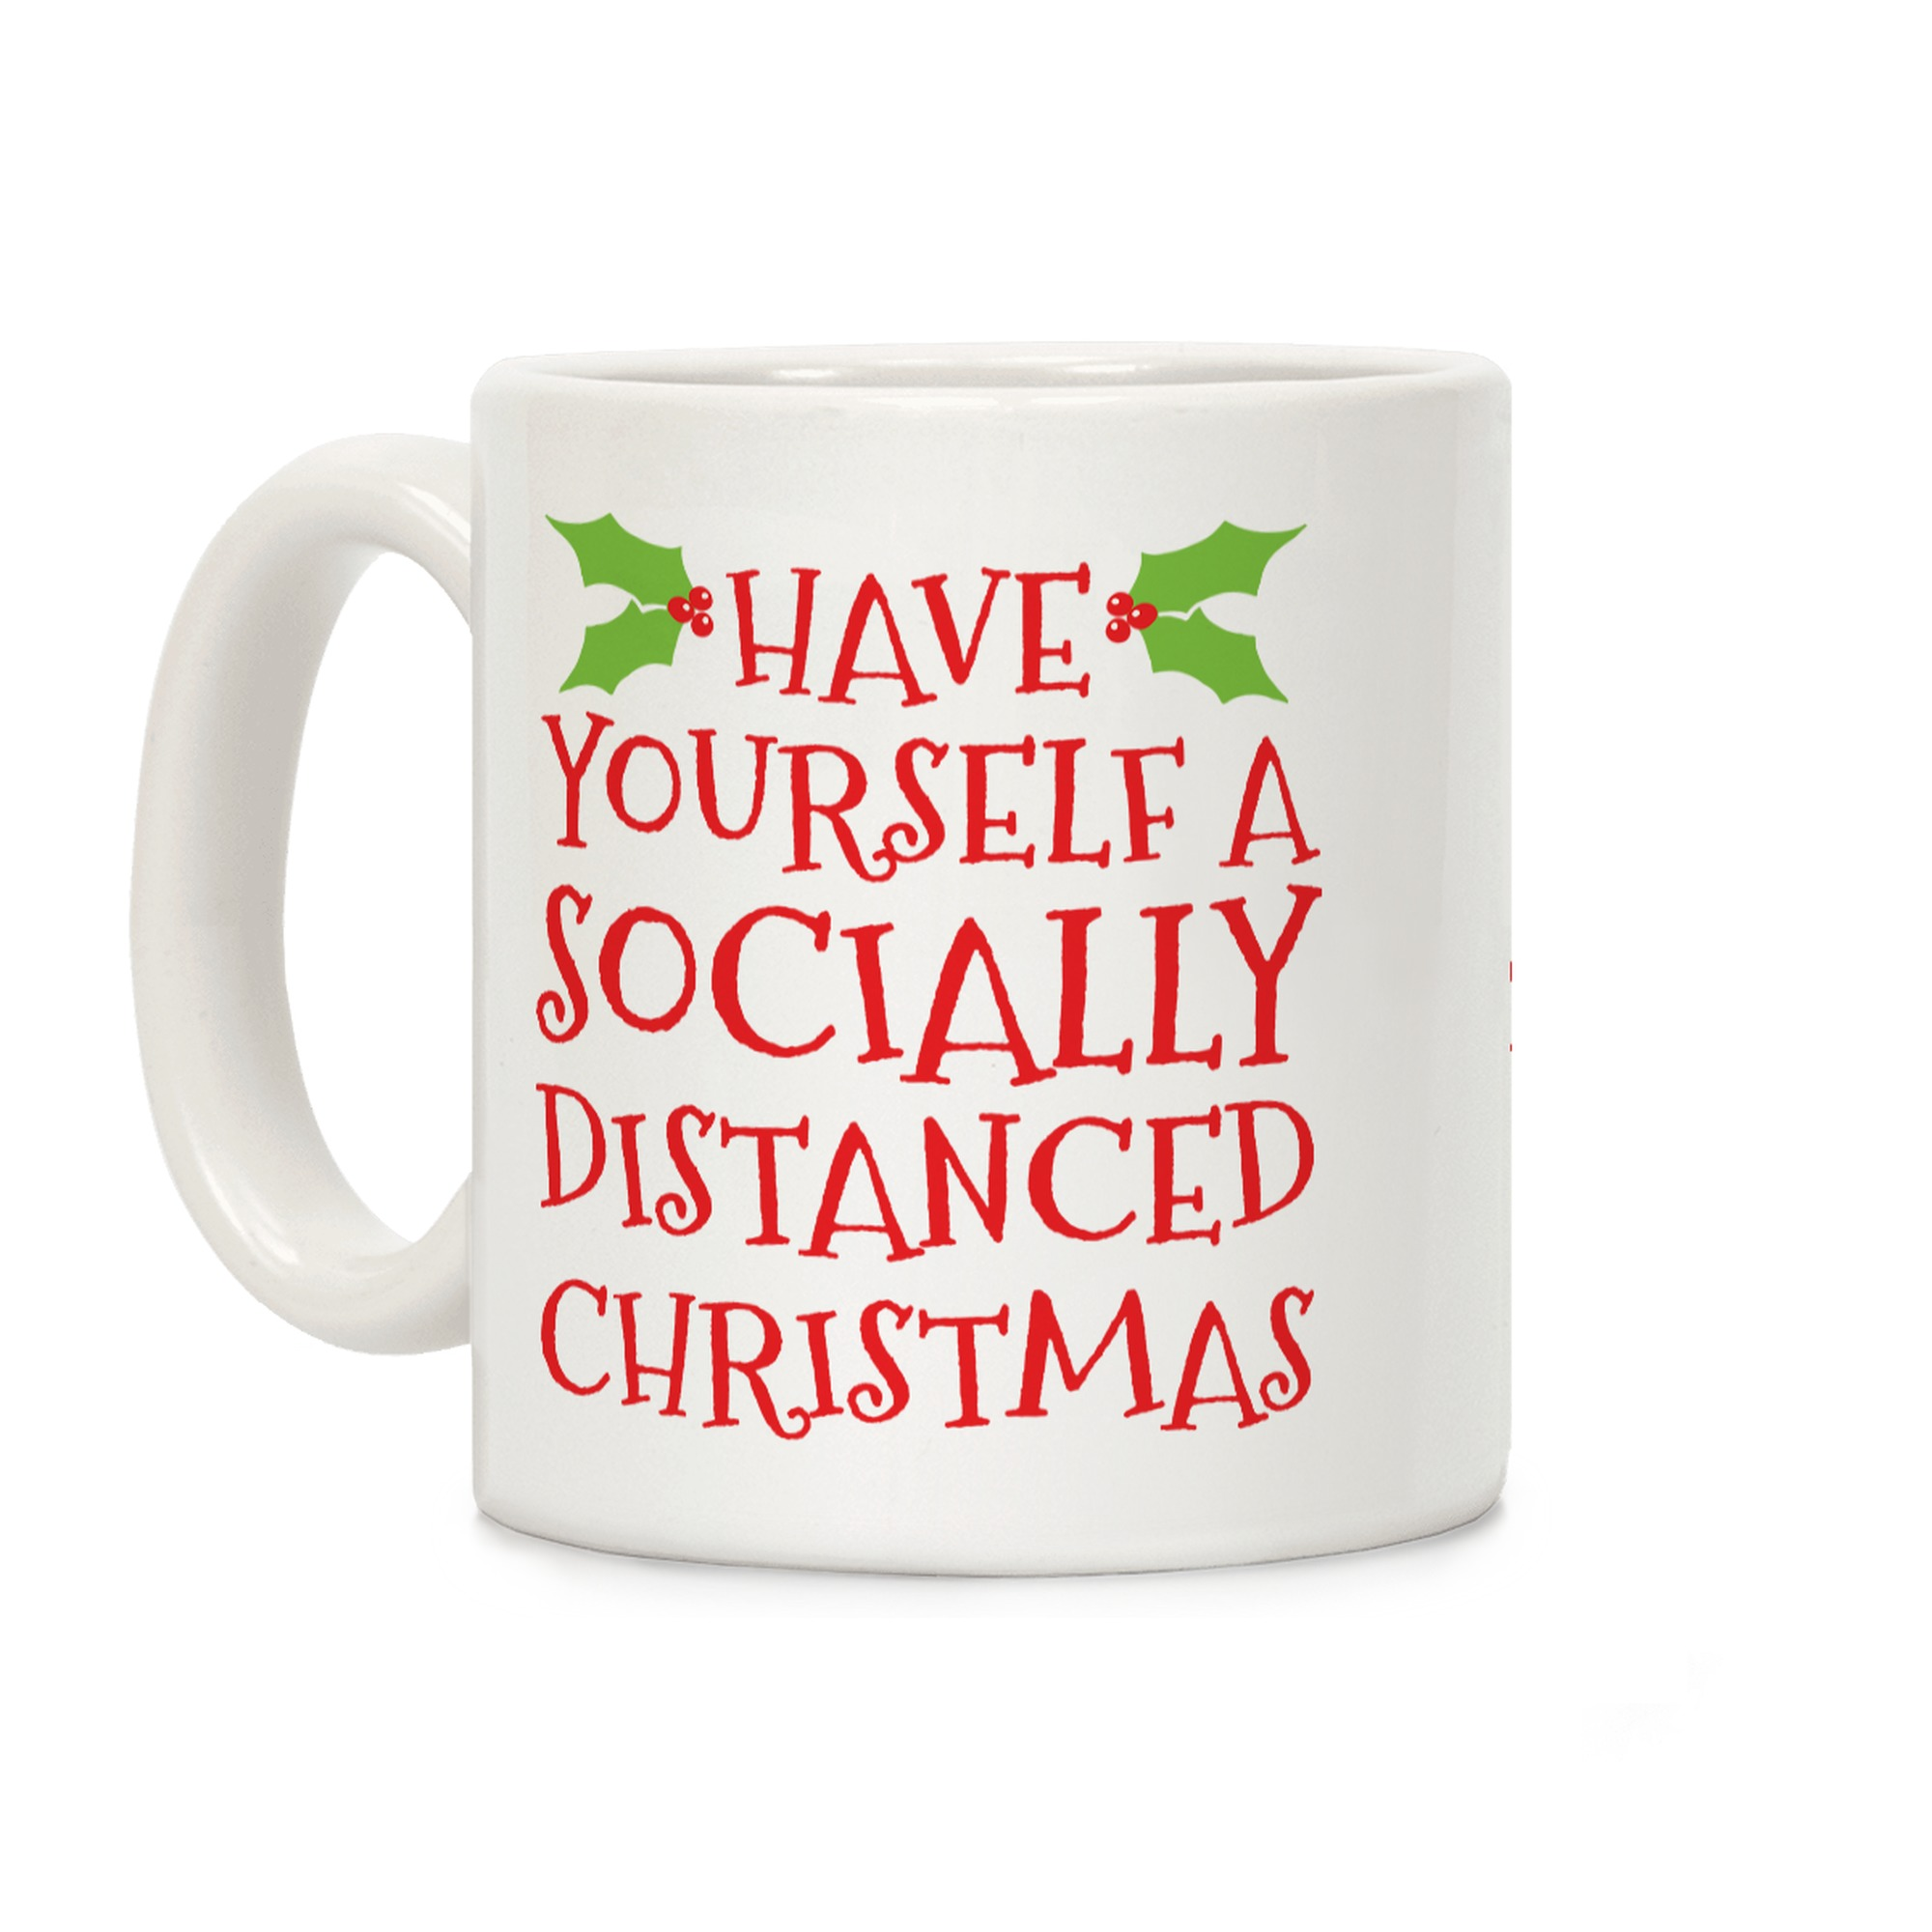 Have Yourself A Socially Distanced Christmas Coffee Mugs Lookhuman